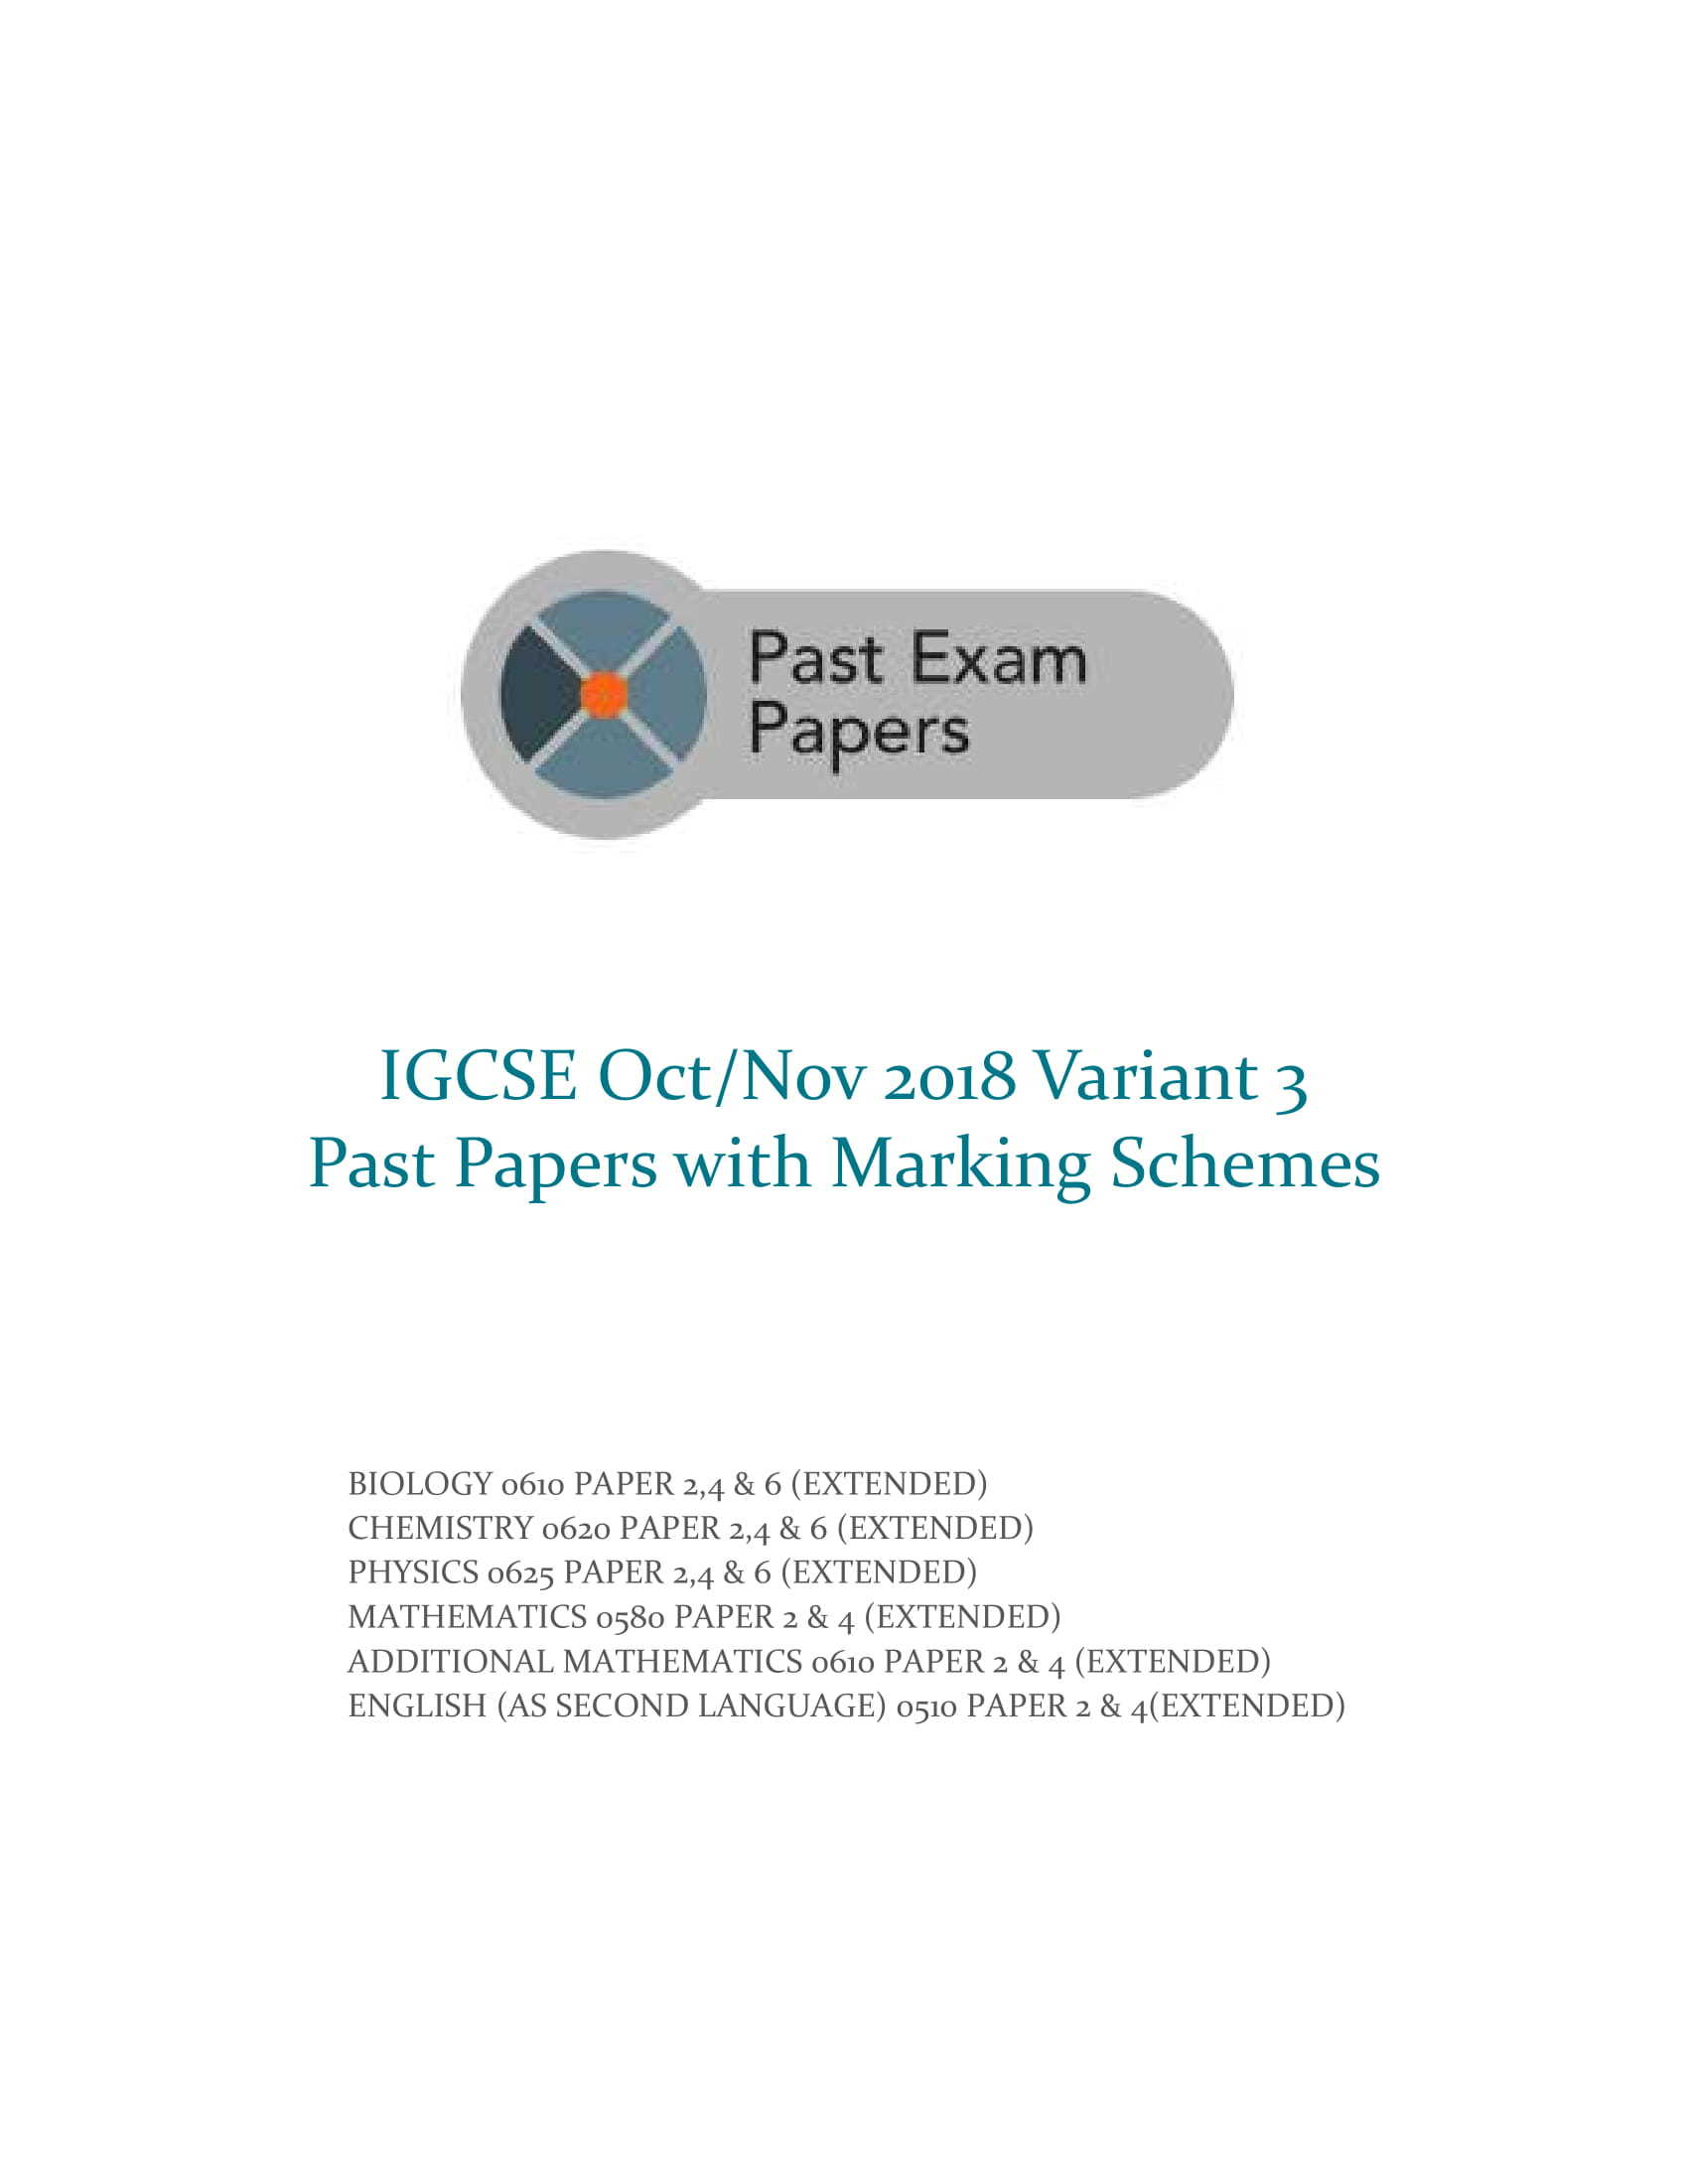 IGCSE Past Papers